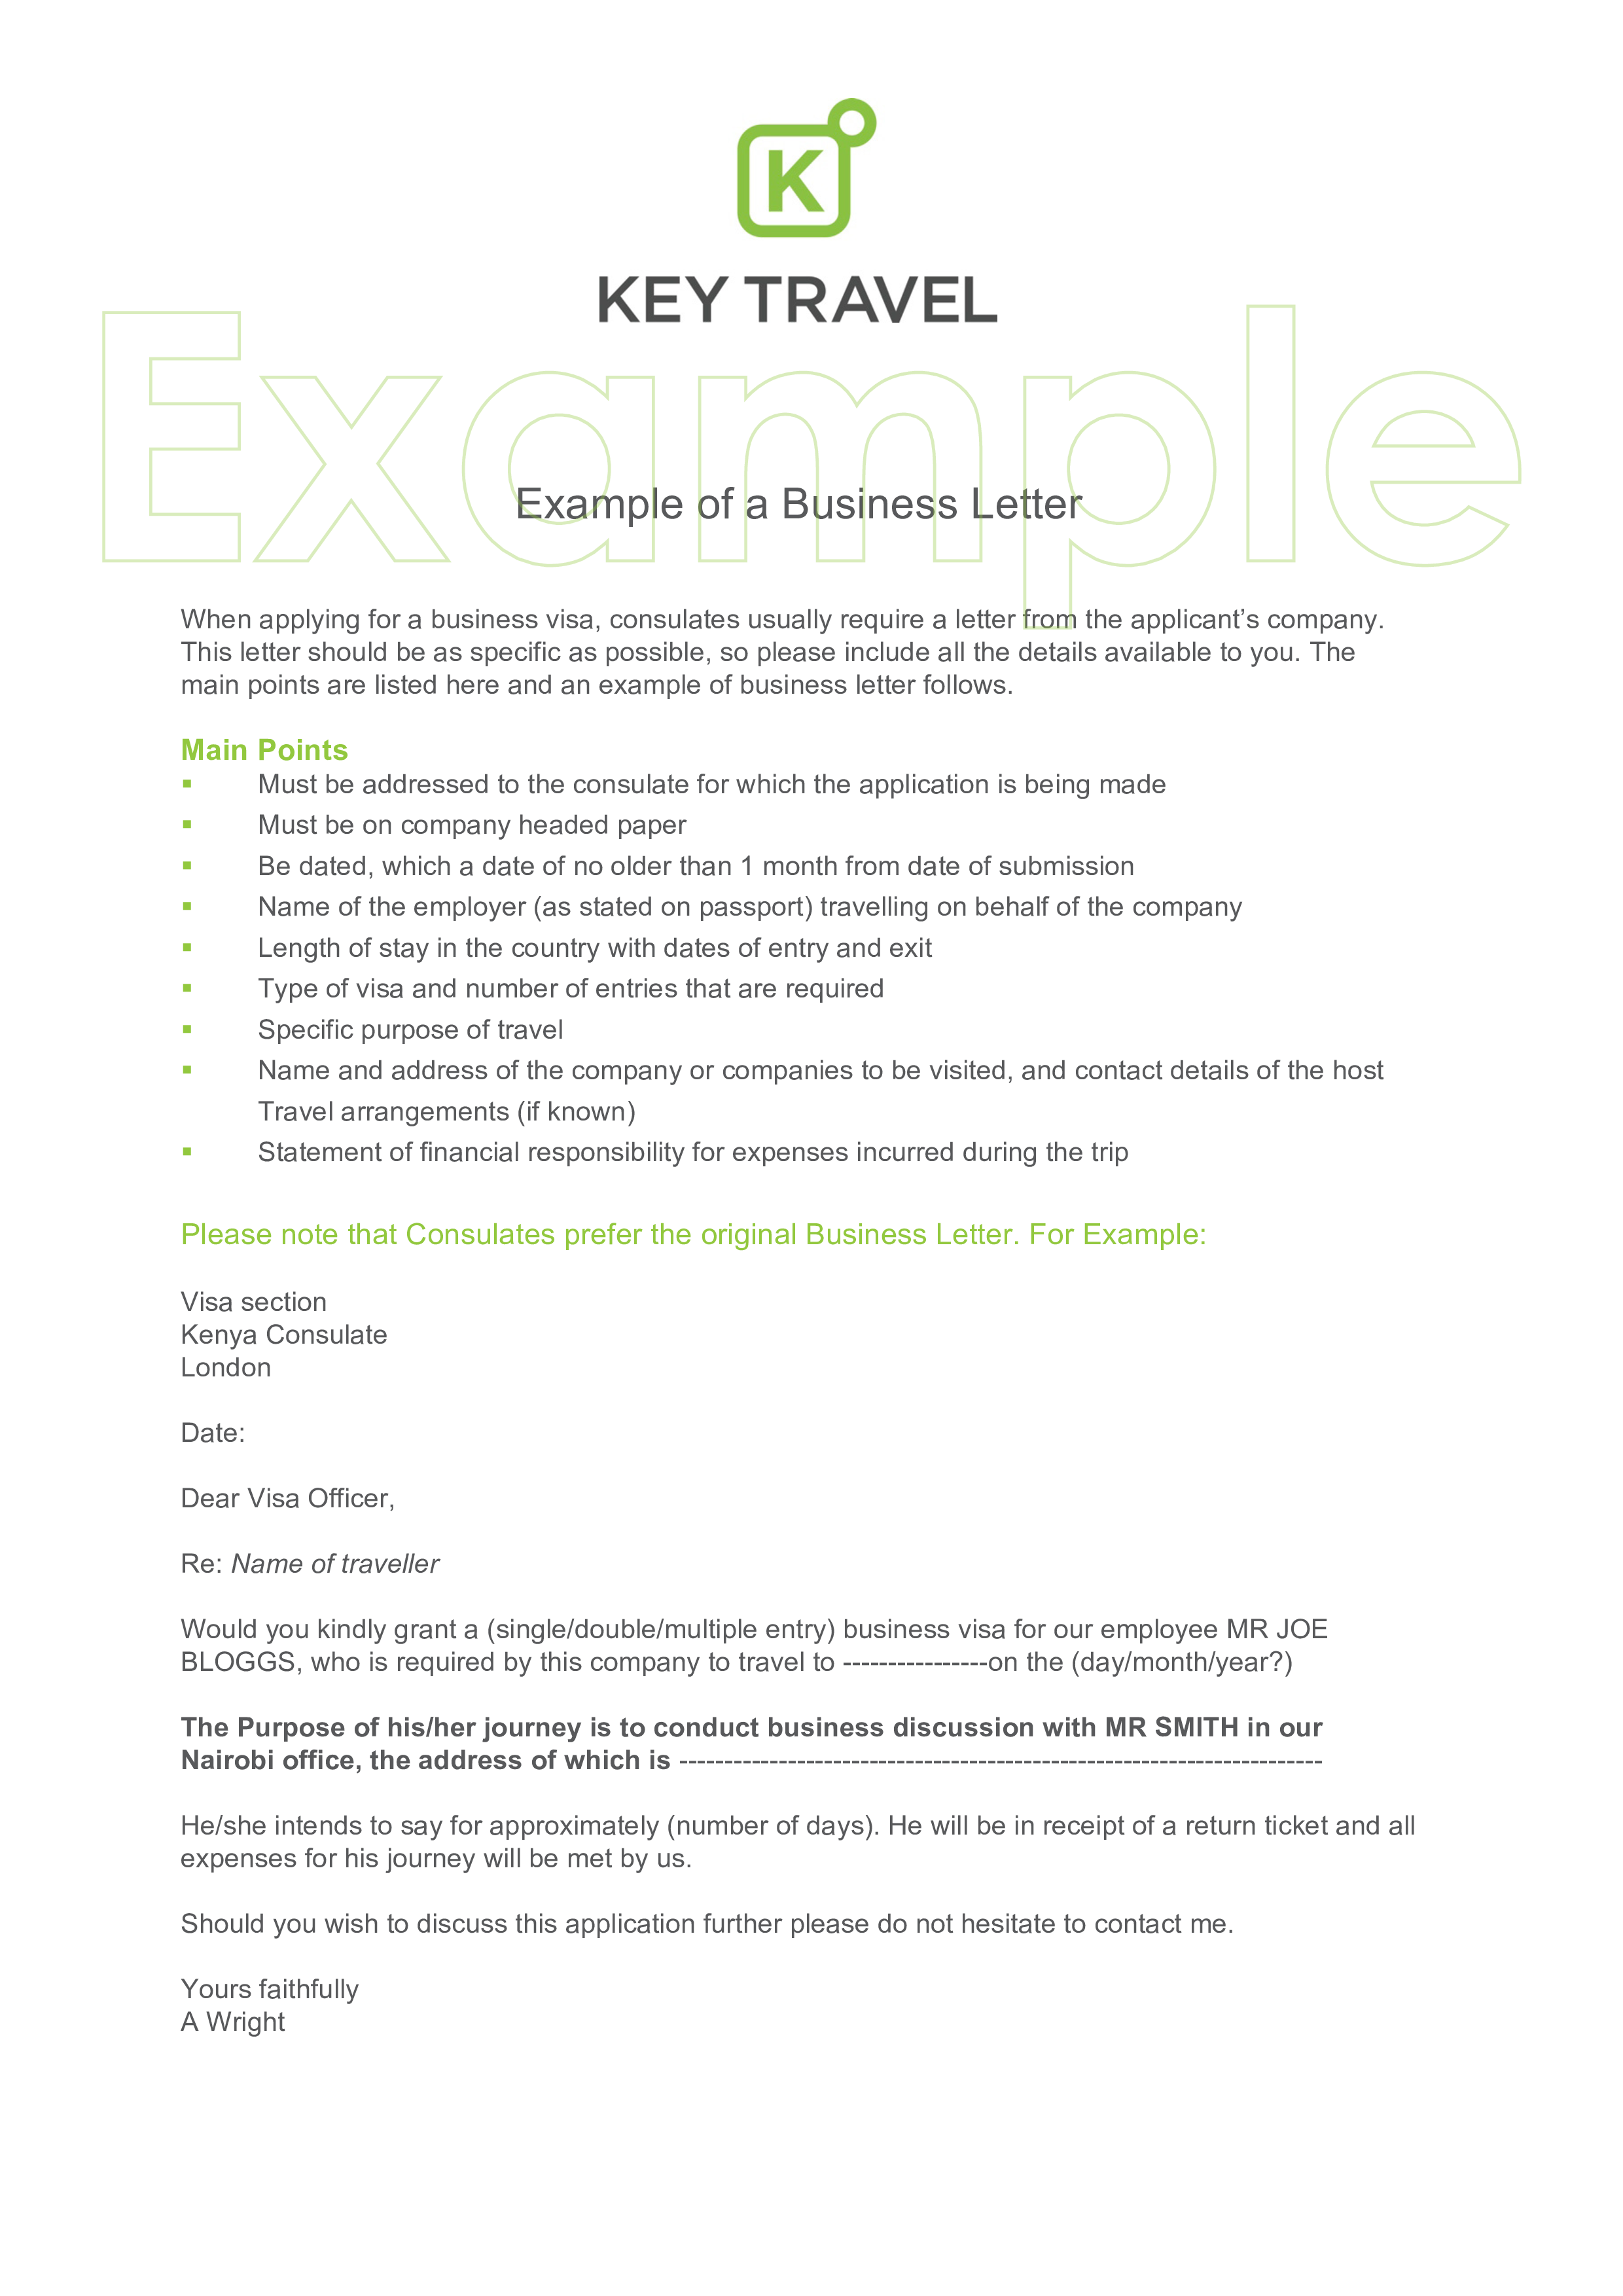 Standard Business Letter Templates At